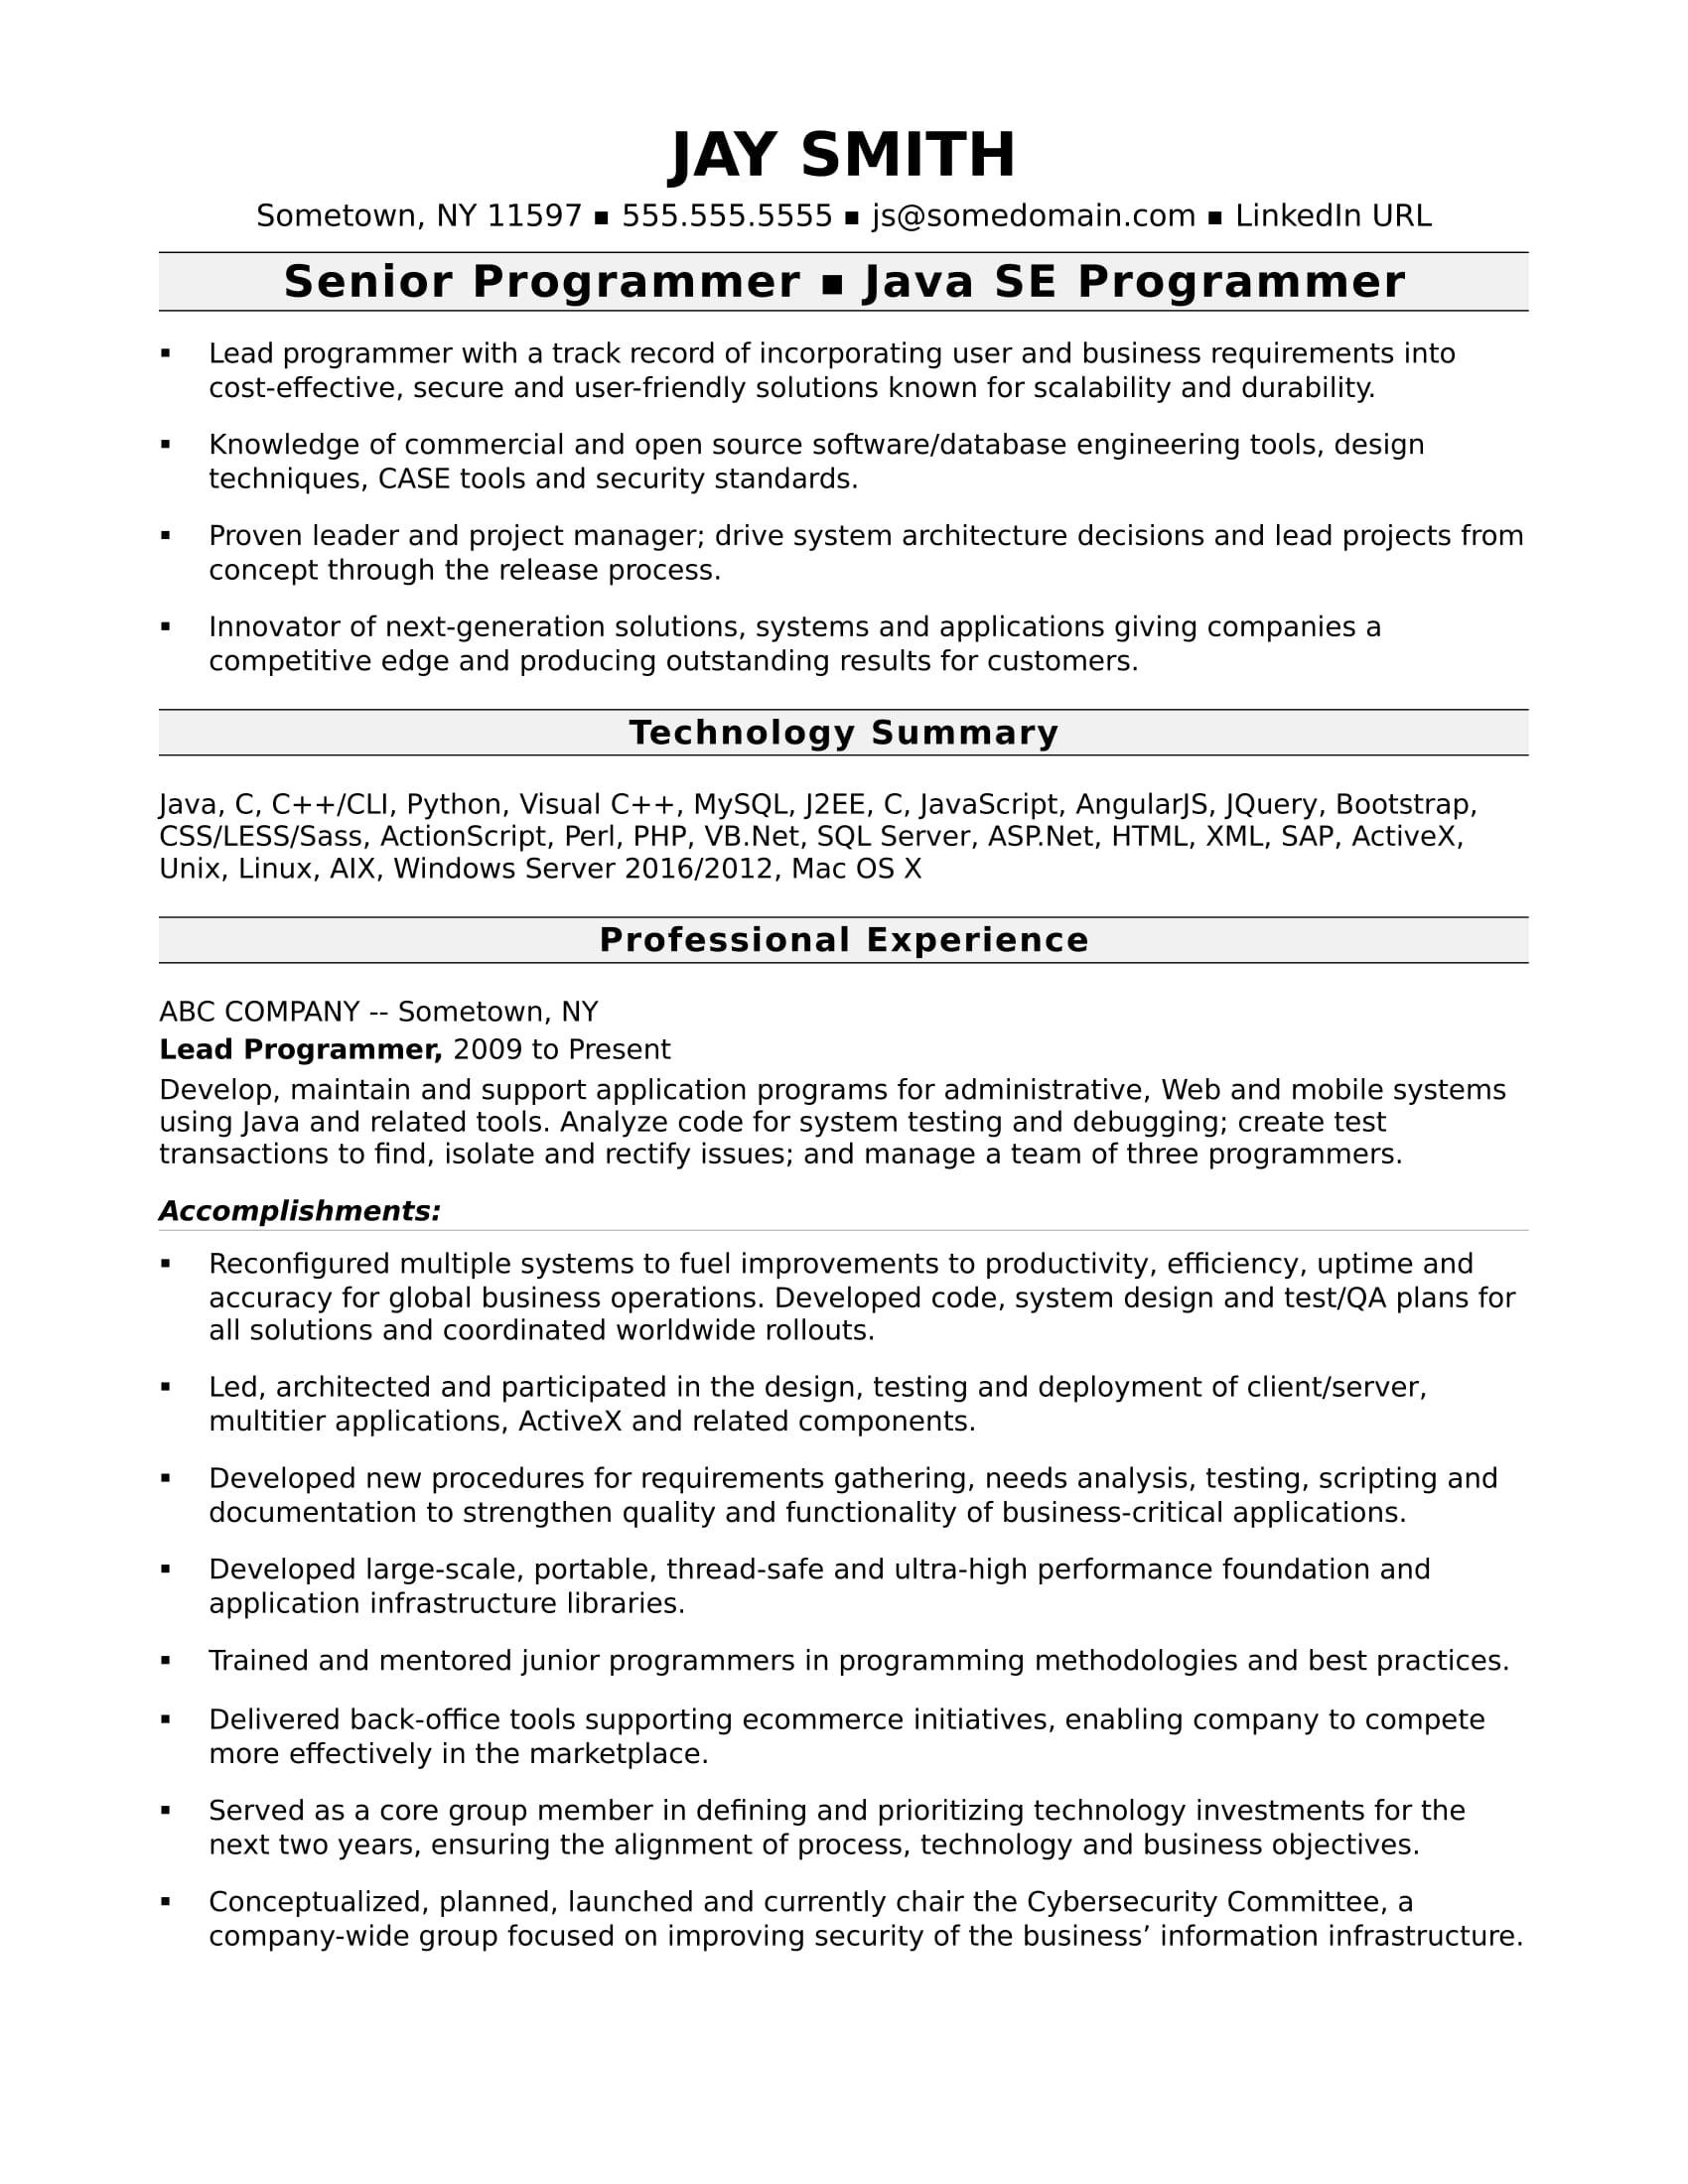 programmer resume template monster computer software programs for experienced therapist Resume Computer Software Programs For Resume